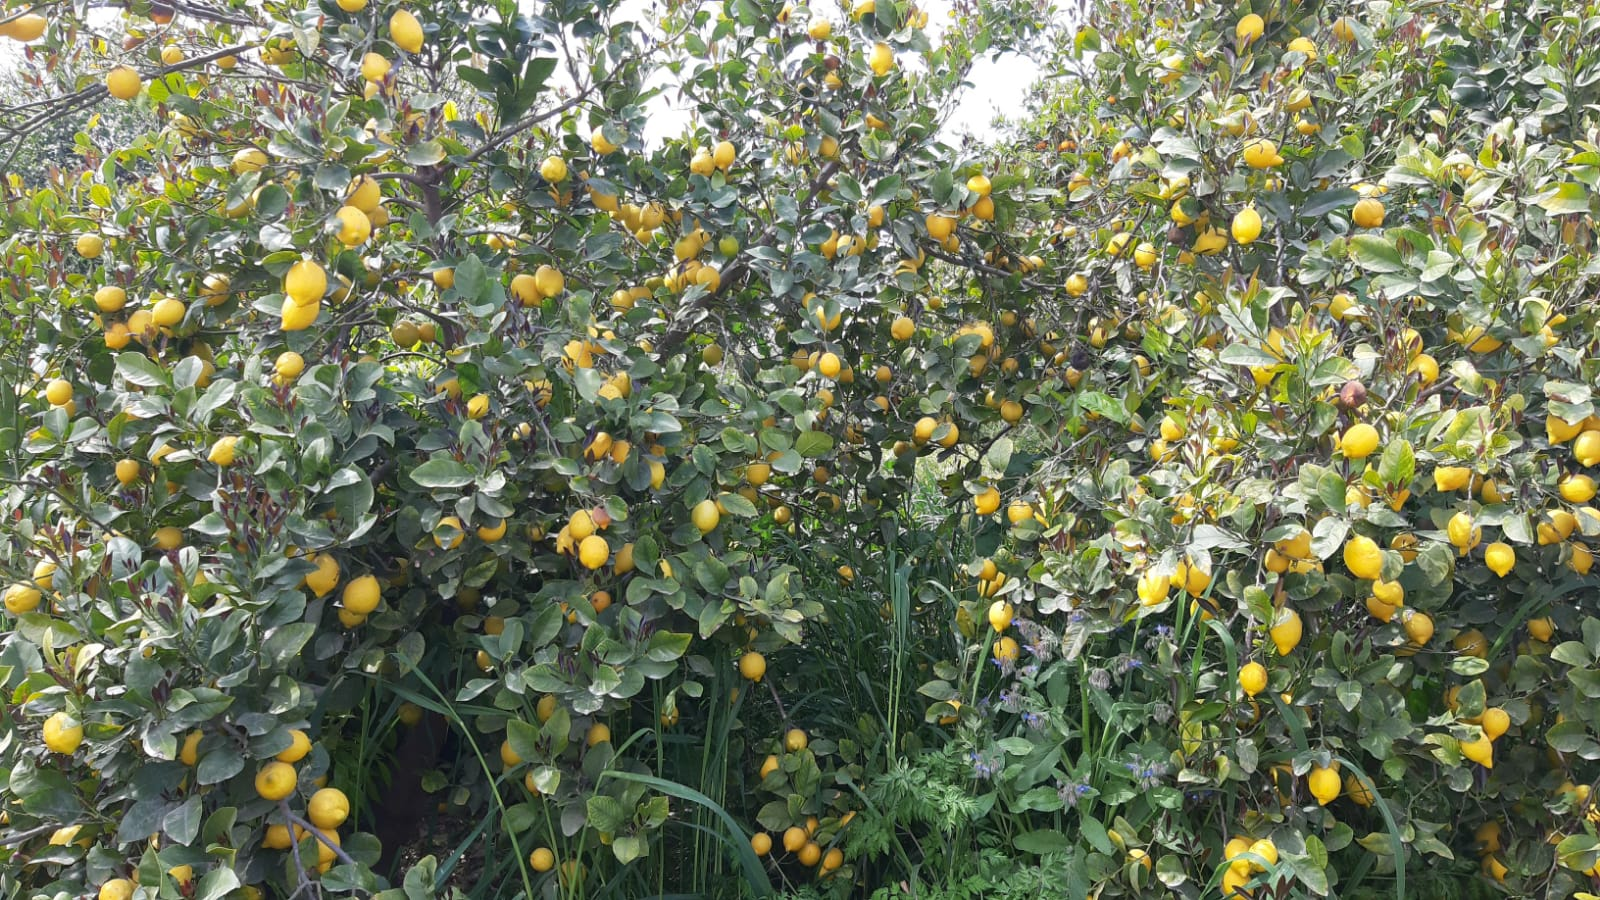 Fields of lemon trees with lemons on the branches